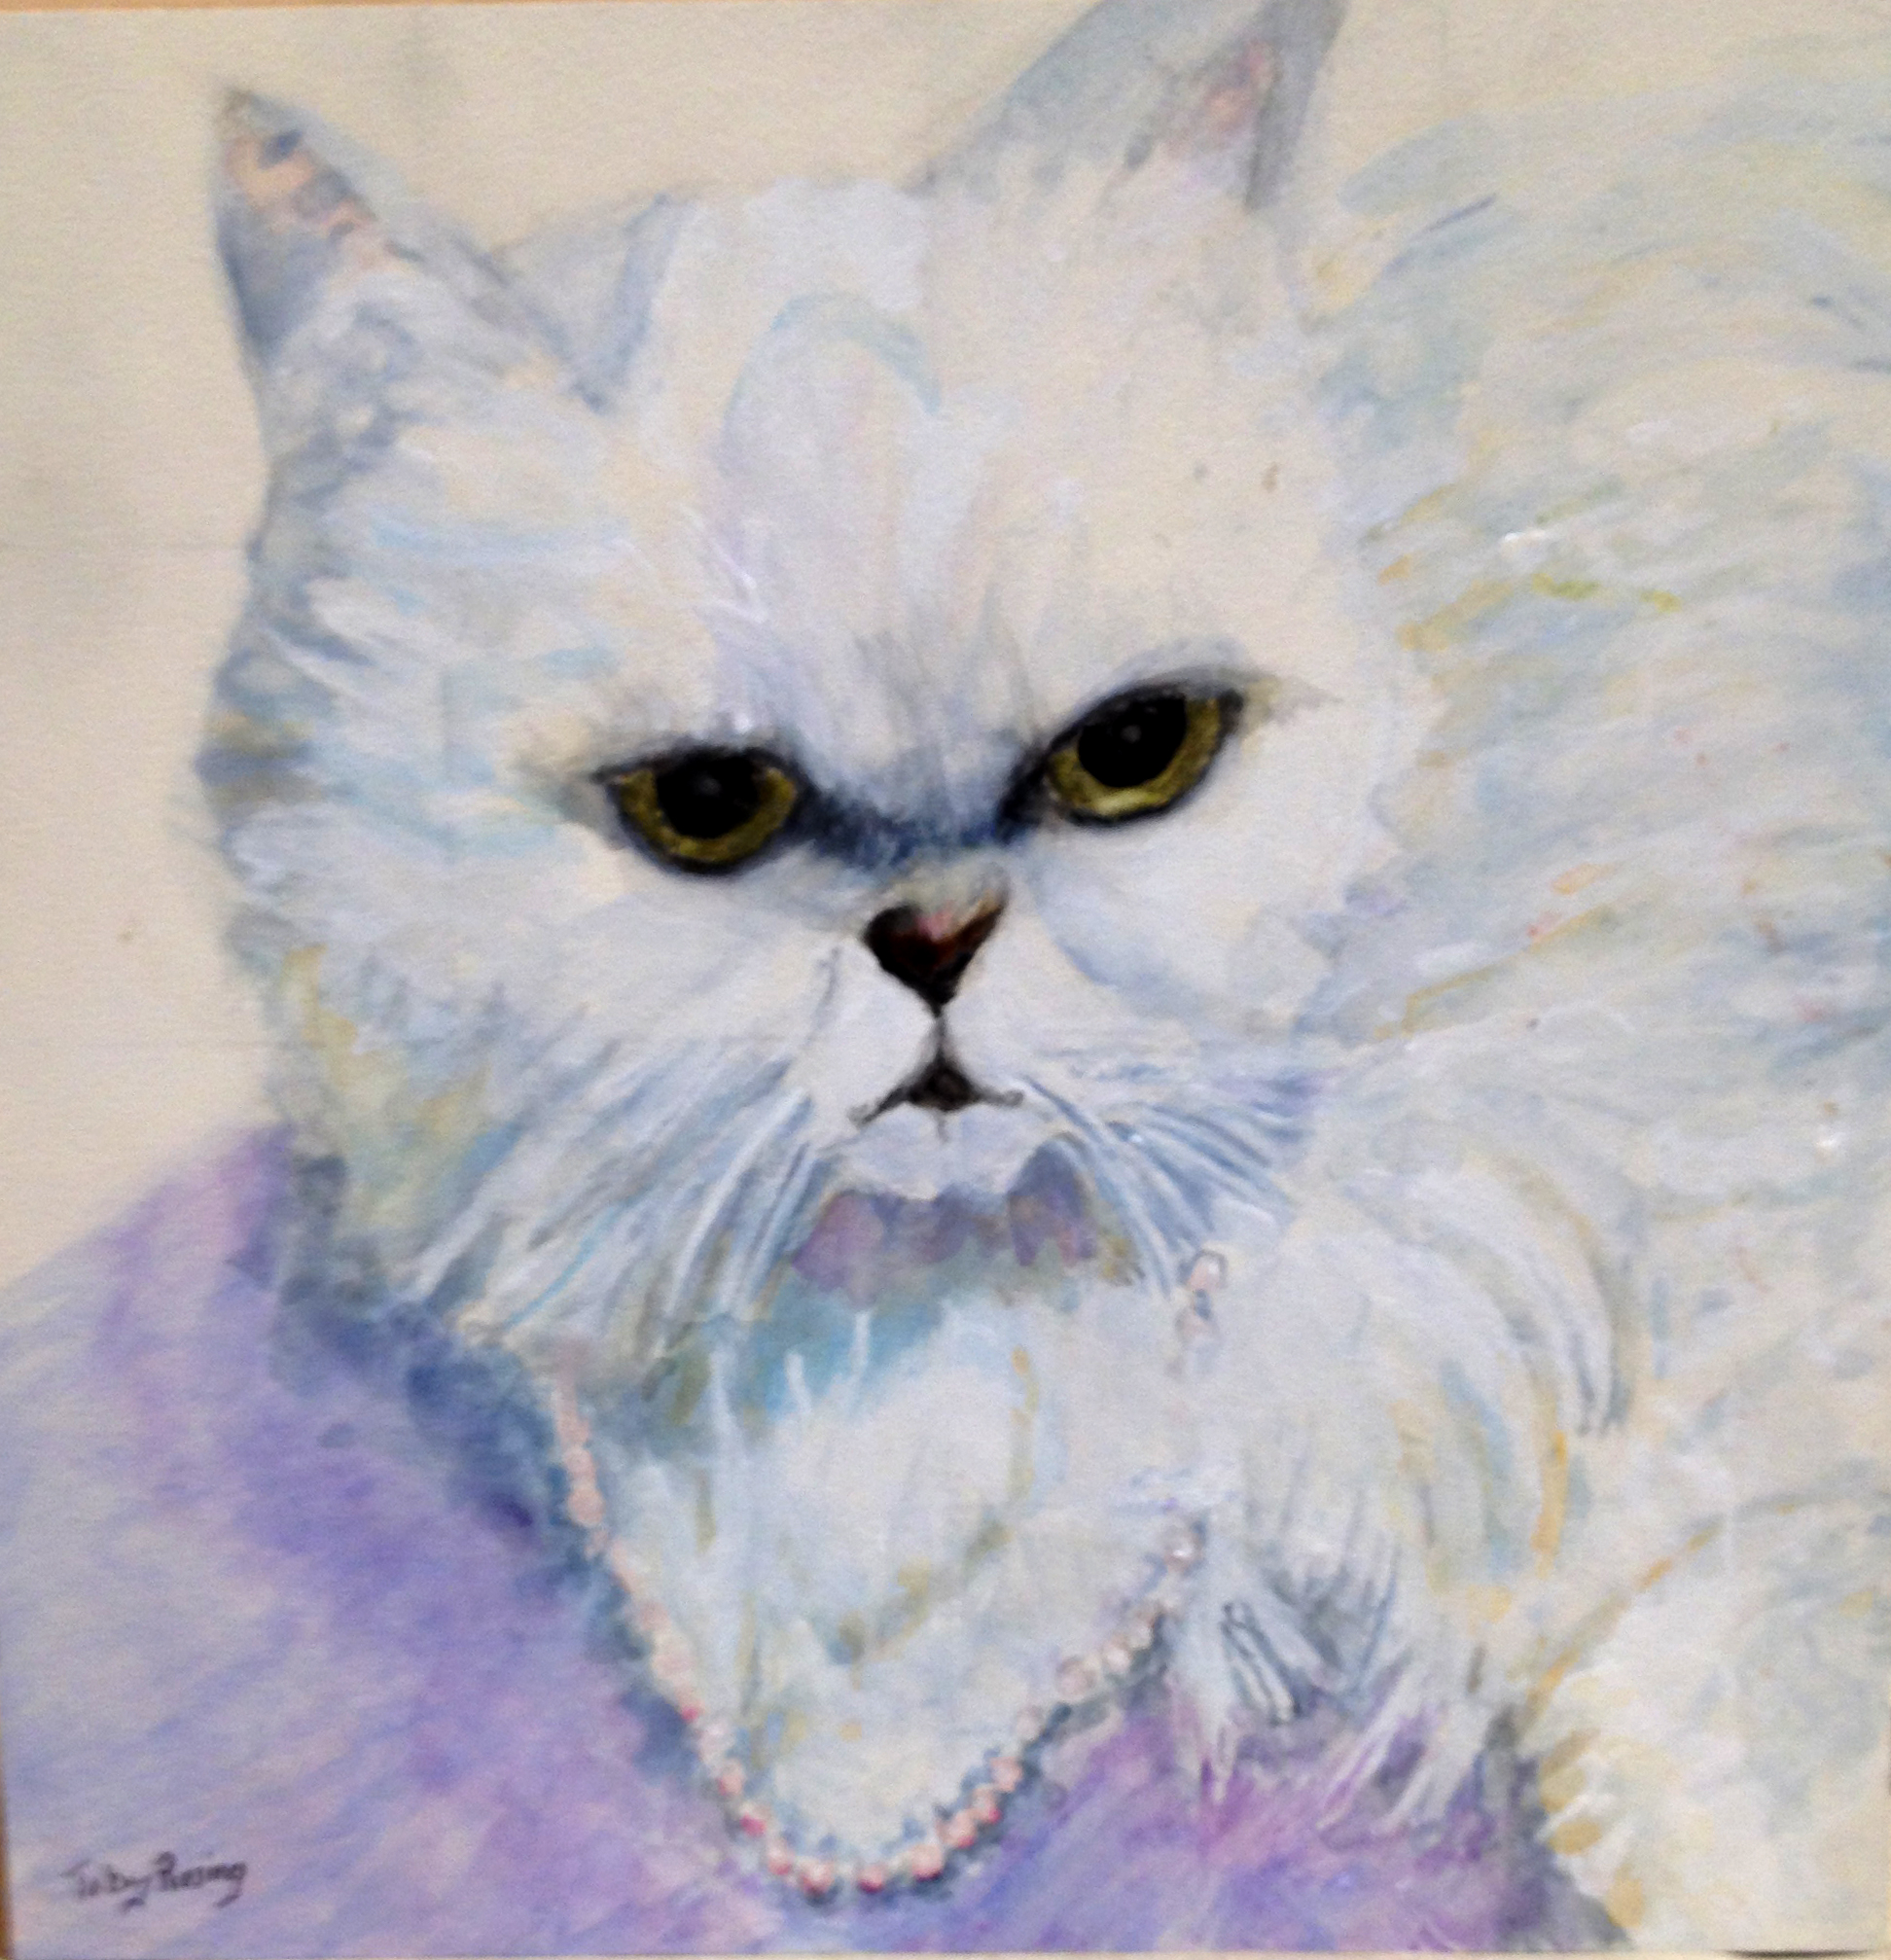 Nathan's Cat - Watercolor